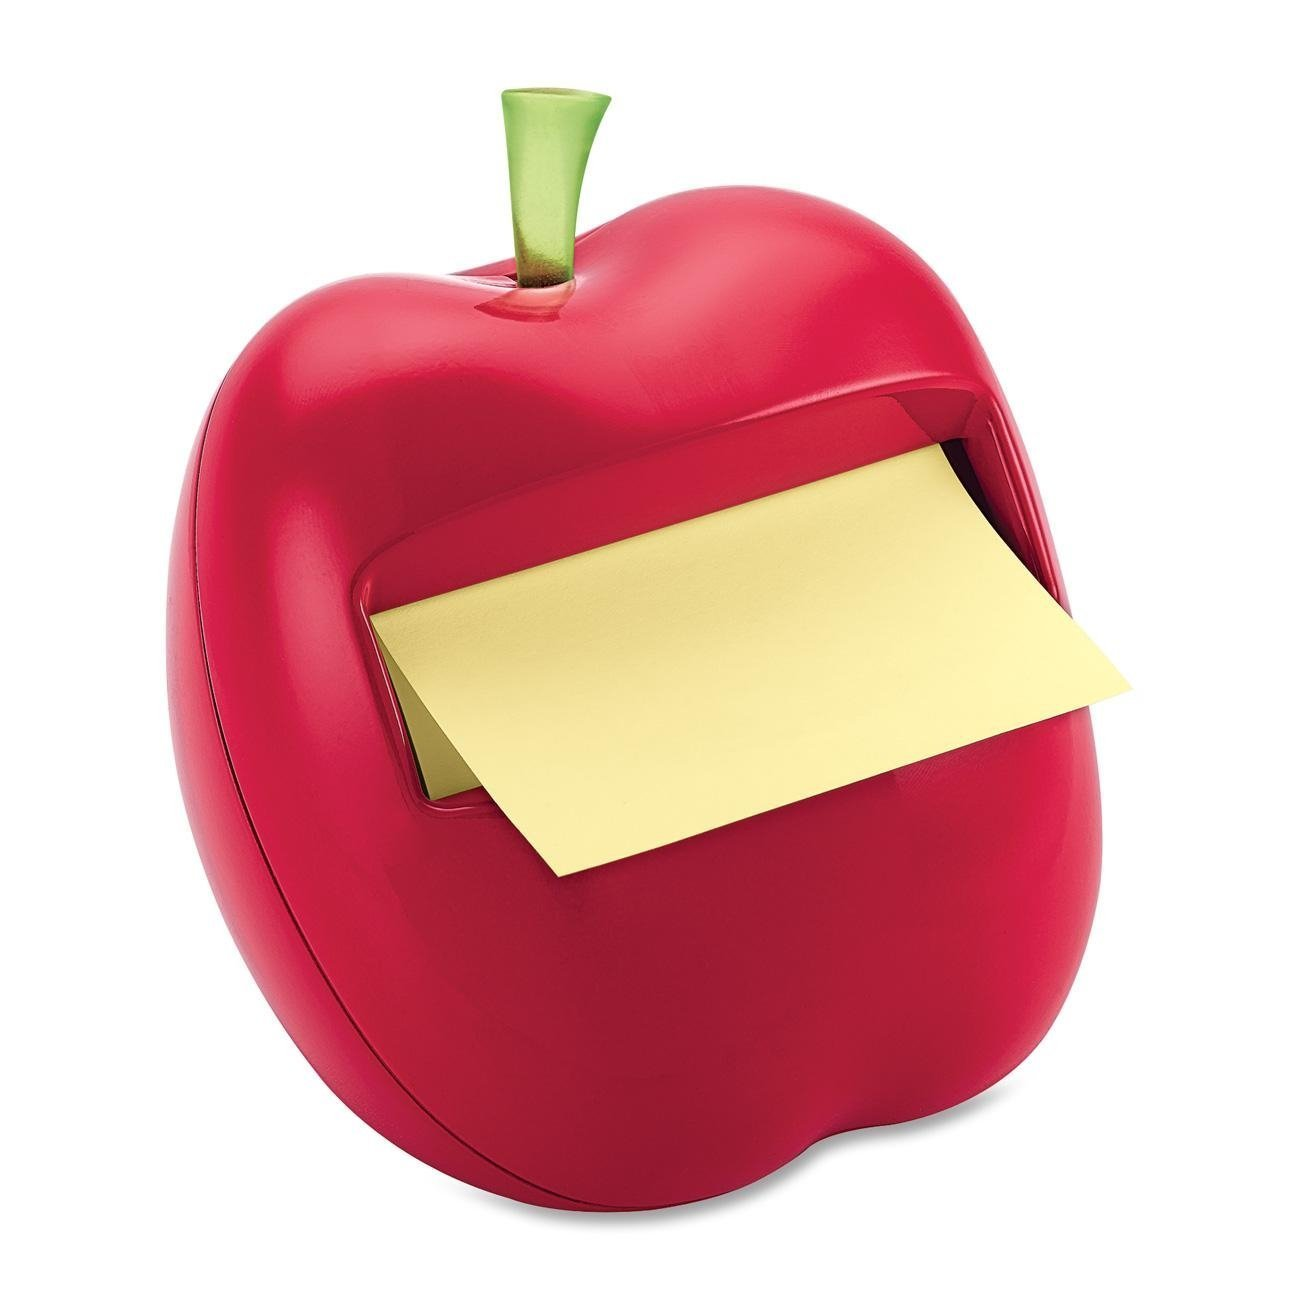 Post-it Pop-up Notes Dispenser for 3 x 3-Inch Notes, Apple Shaped Dispenser, Includes 1 Canary Yellow Note, 4-PACK 3M